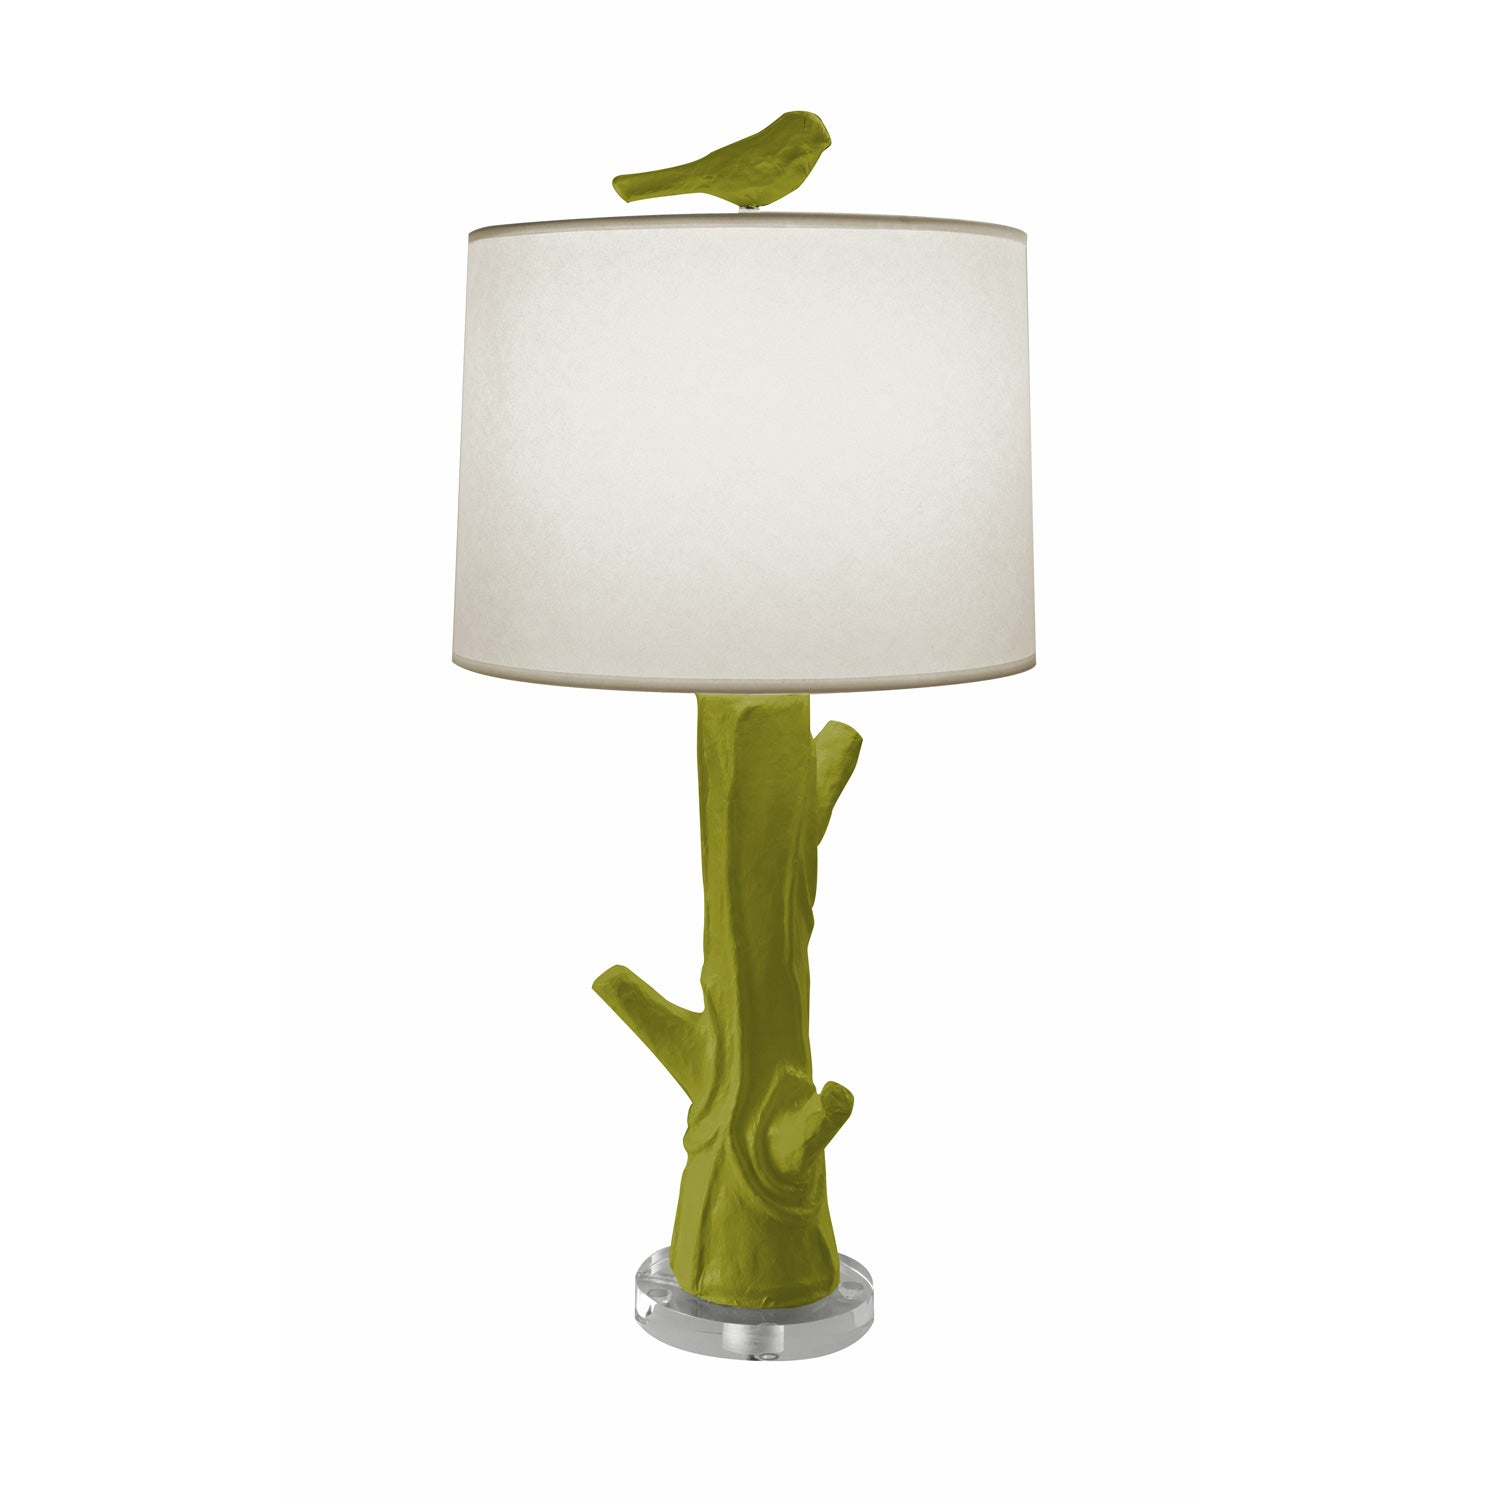 Steph Wood Table Lamp in green by Stray Dog Designs, Paper mache